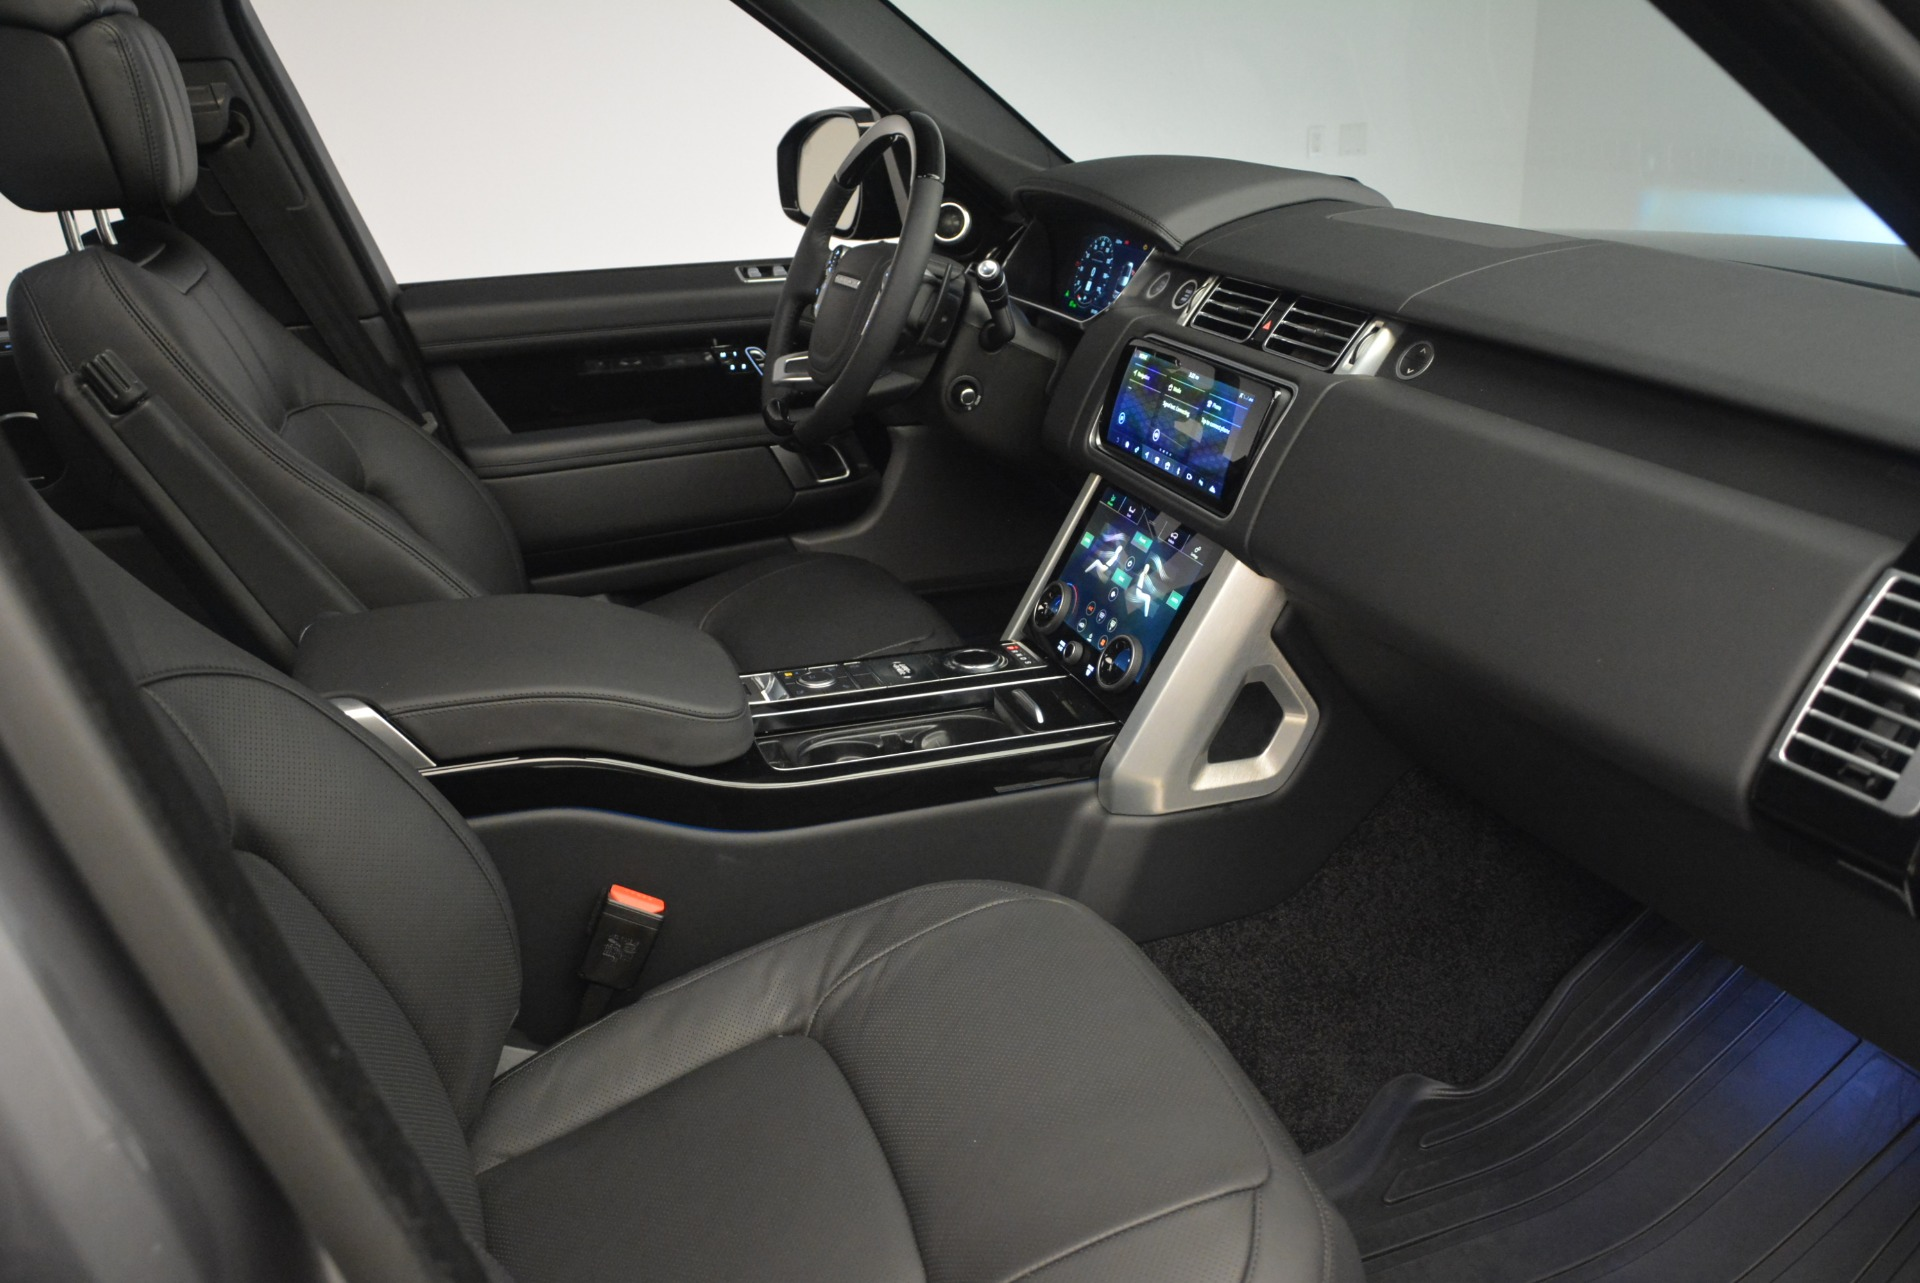 Used 2018 Land Rover Range Rover Supercharged LWB For Sale In Greenwich, CT 2291_p29